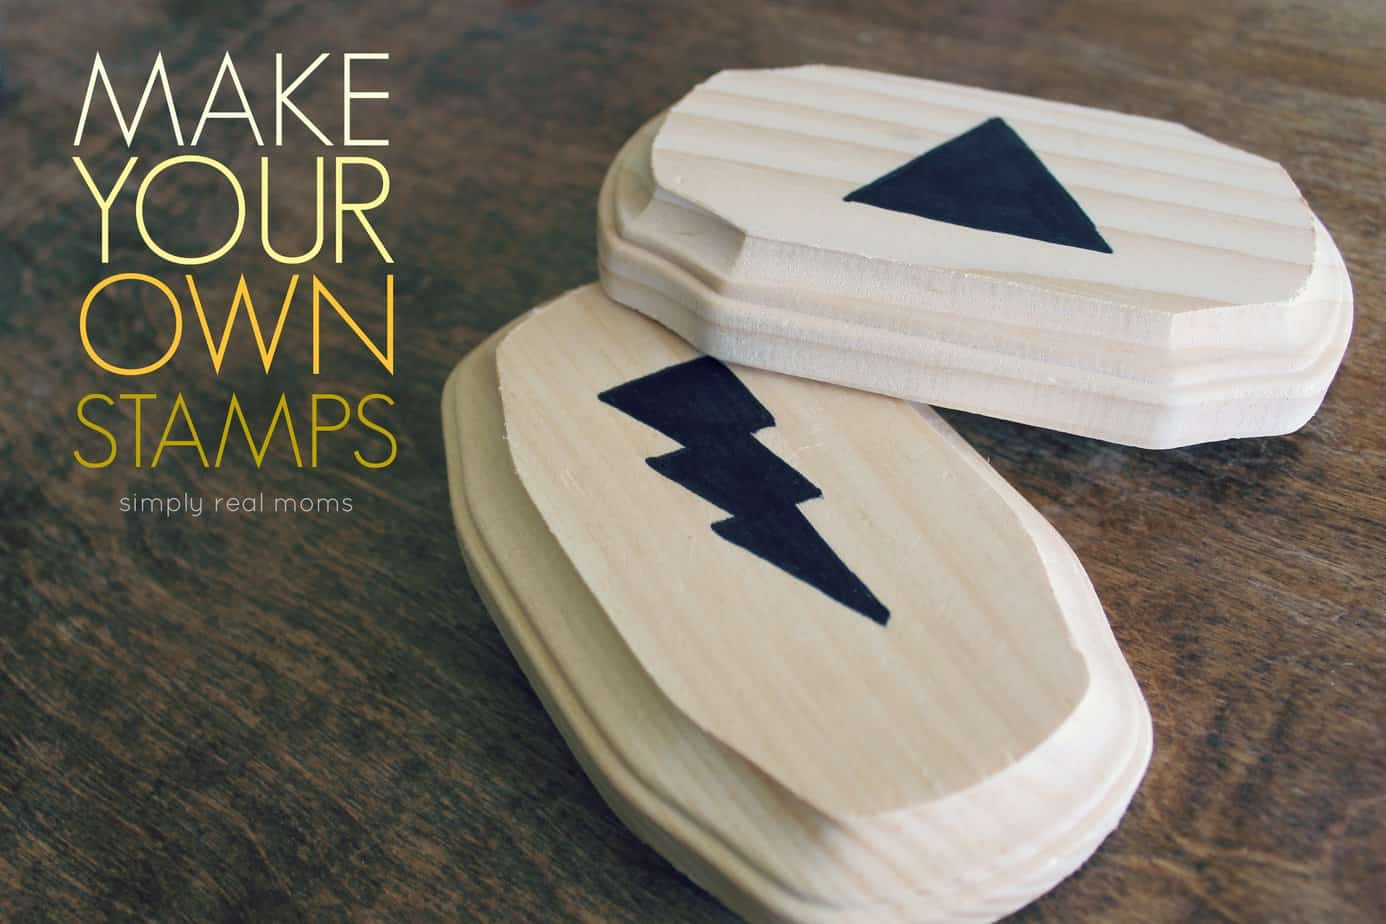 Simply Made: Make Your Own Stamps 3